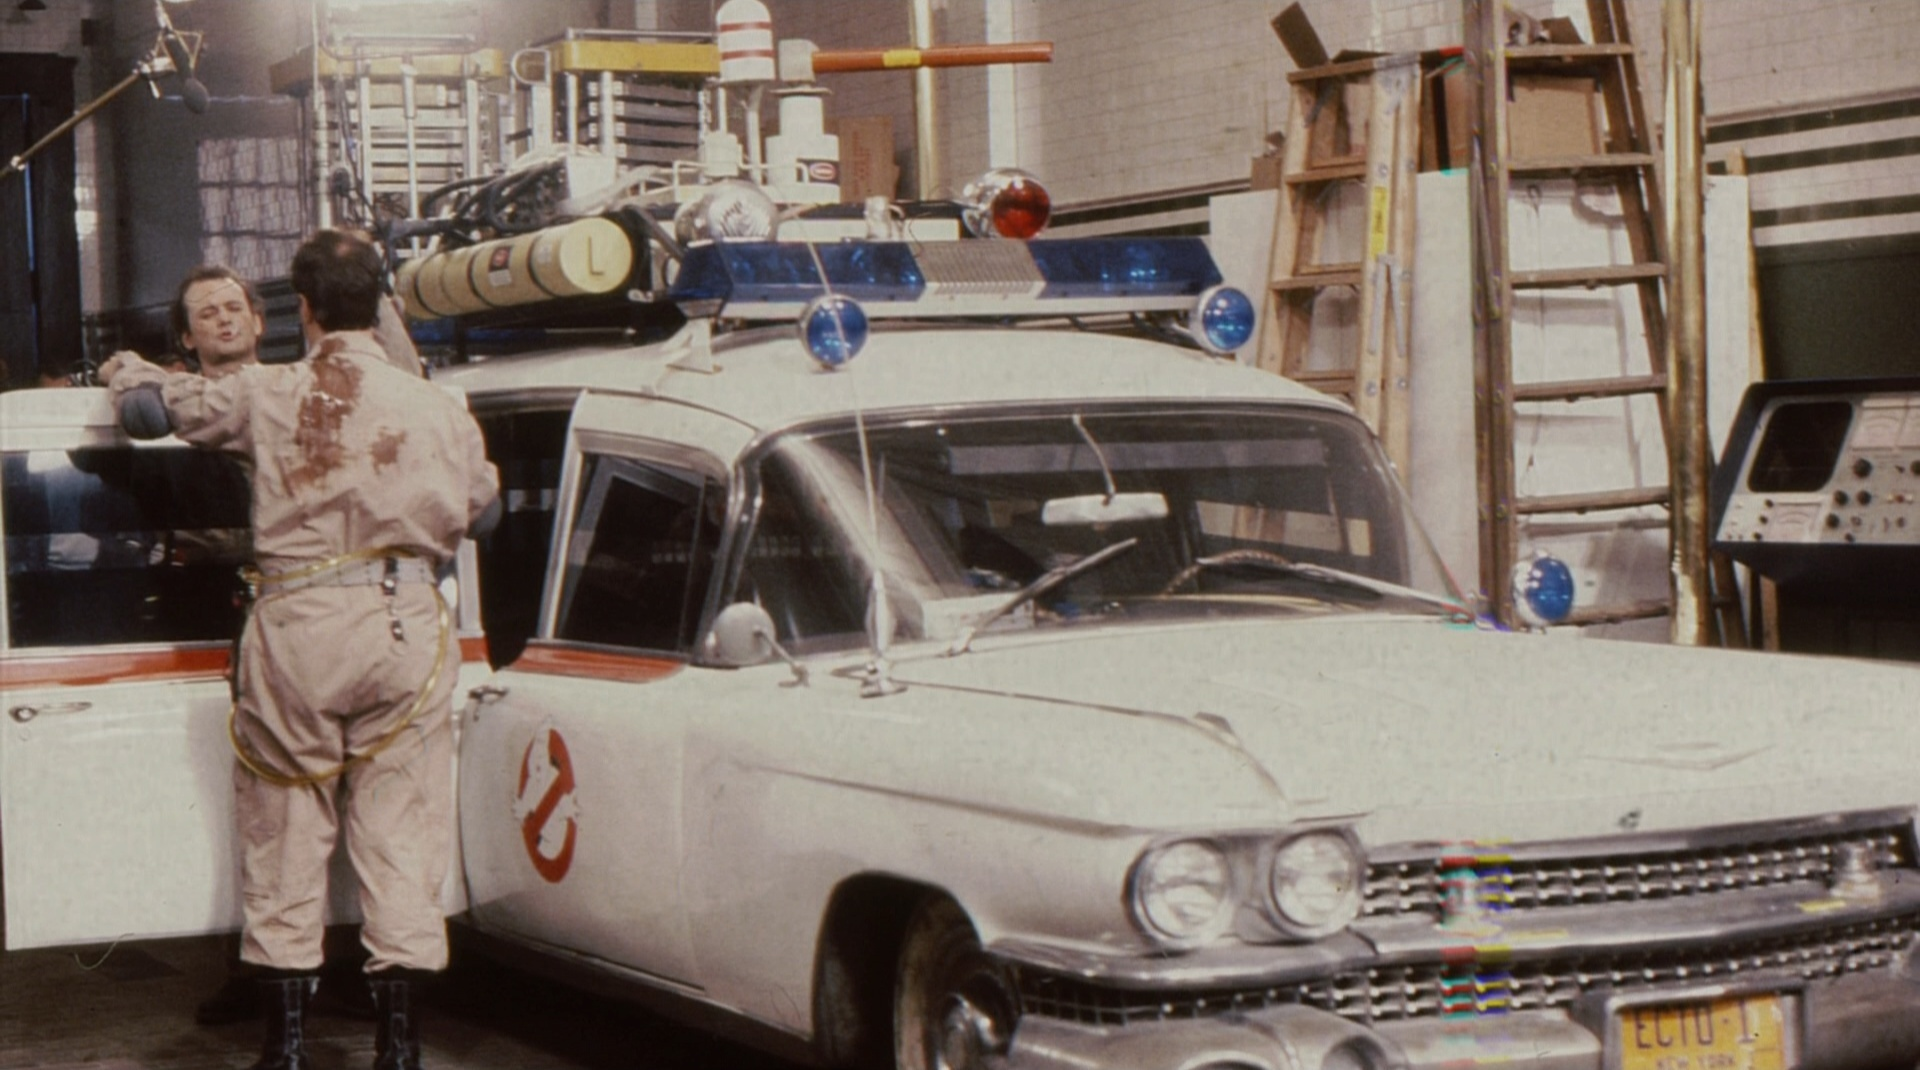 Bill Murray and Dan Aykroyd act out a scene next to Ecto-1, the Ghostbusters' vehicle of choice.